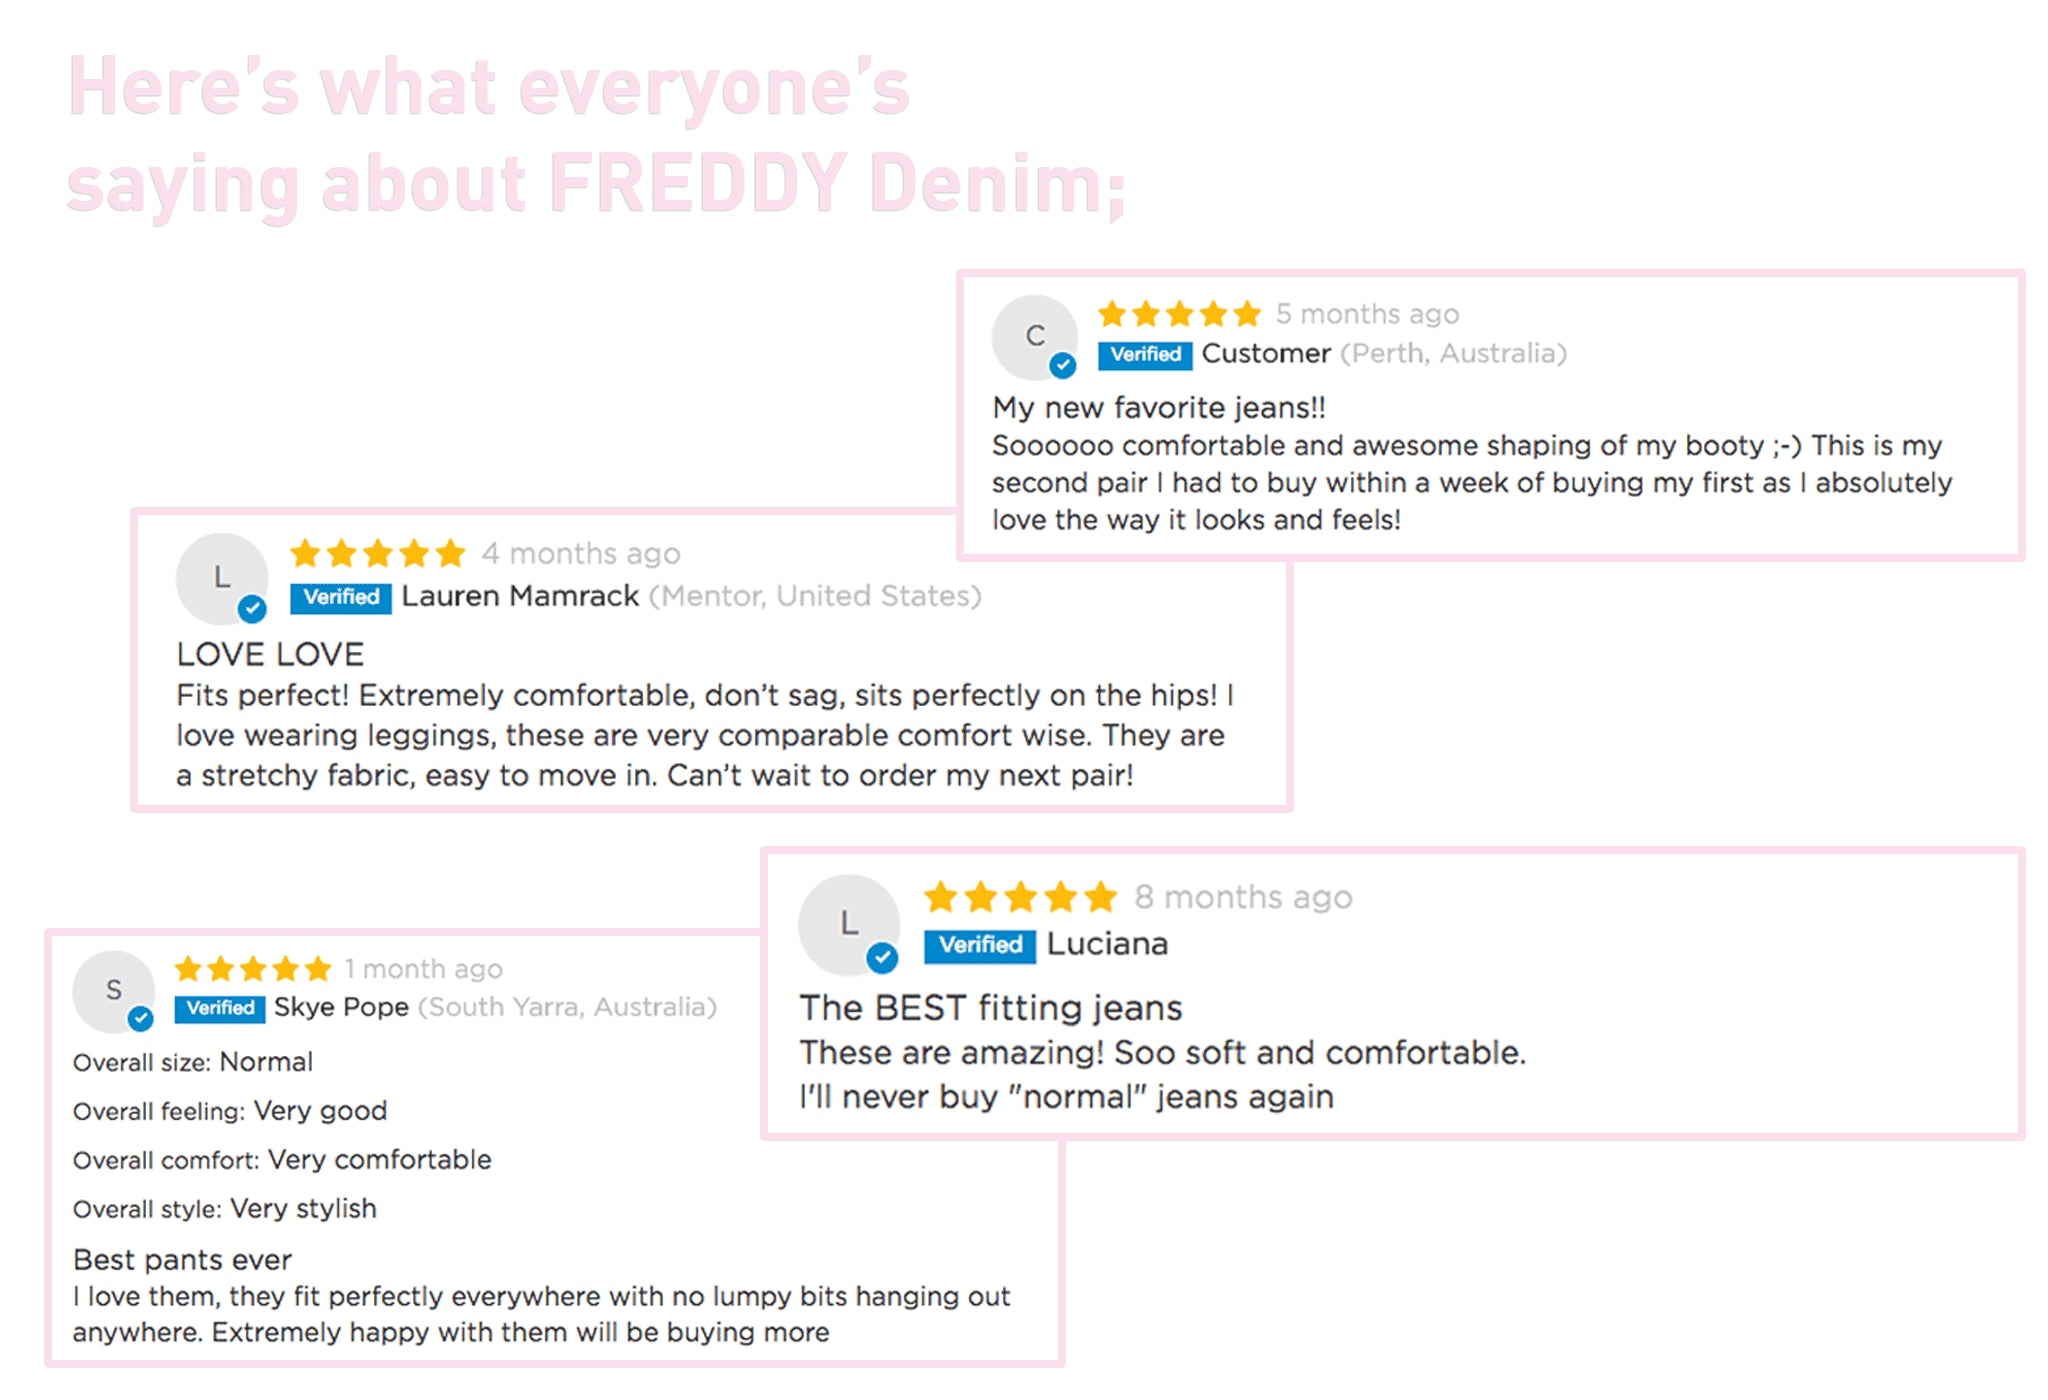 Here's what everyone is saying about FREDDY denim;